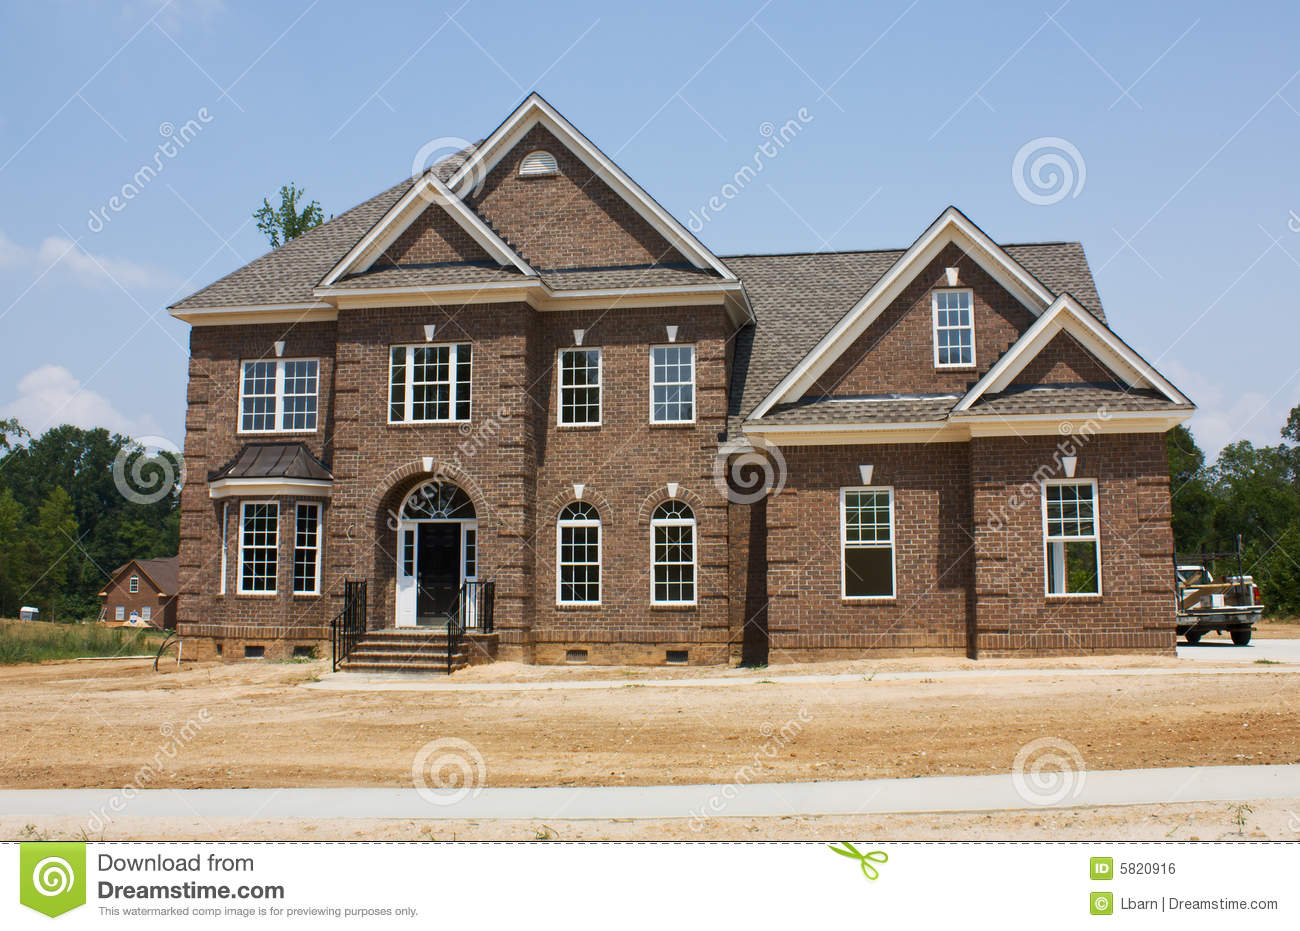 New modern detached house royalty free stock image image for Modern detached house design